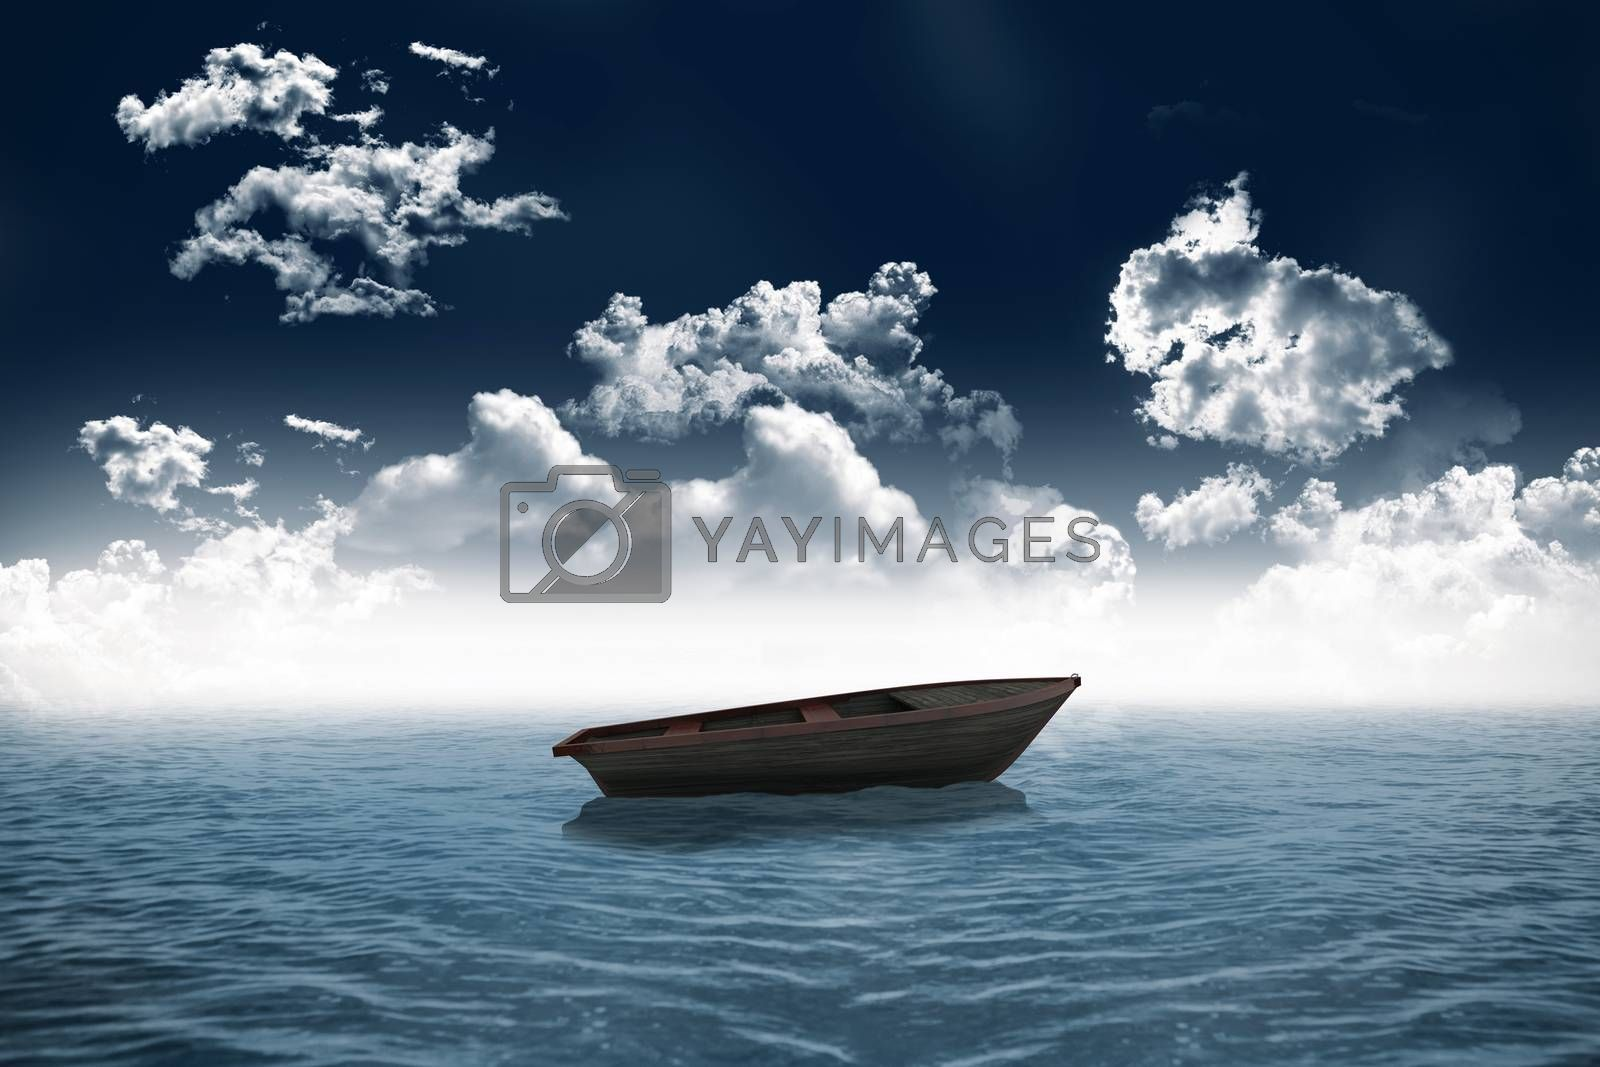 Royalty free image of Small boat in open sea by Wavebreakmedia